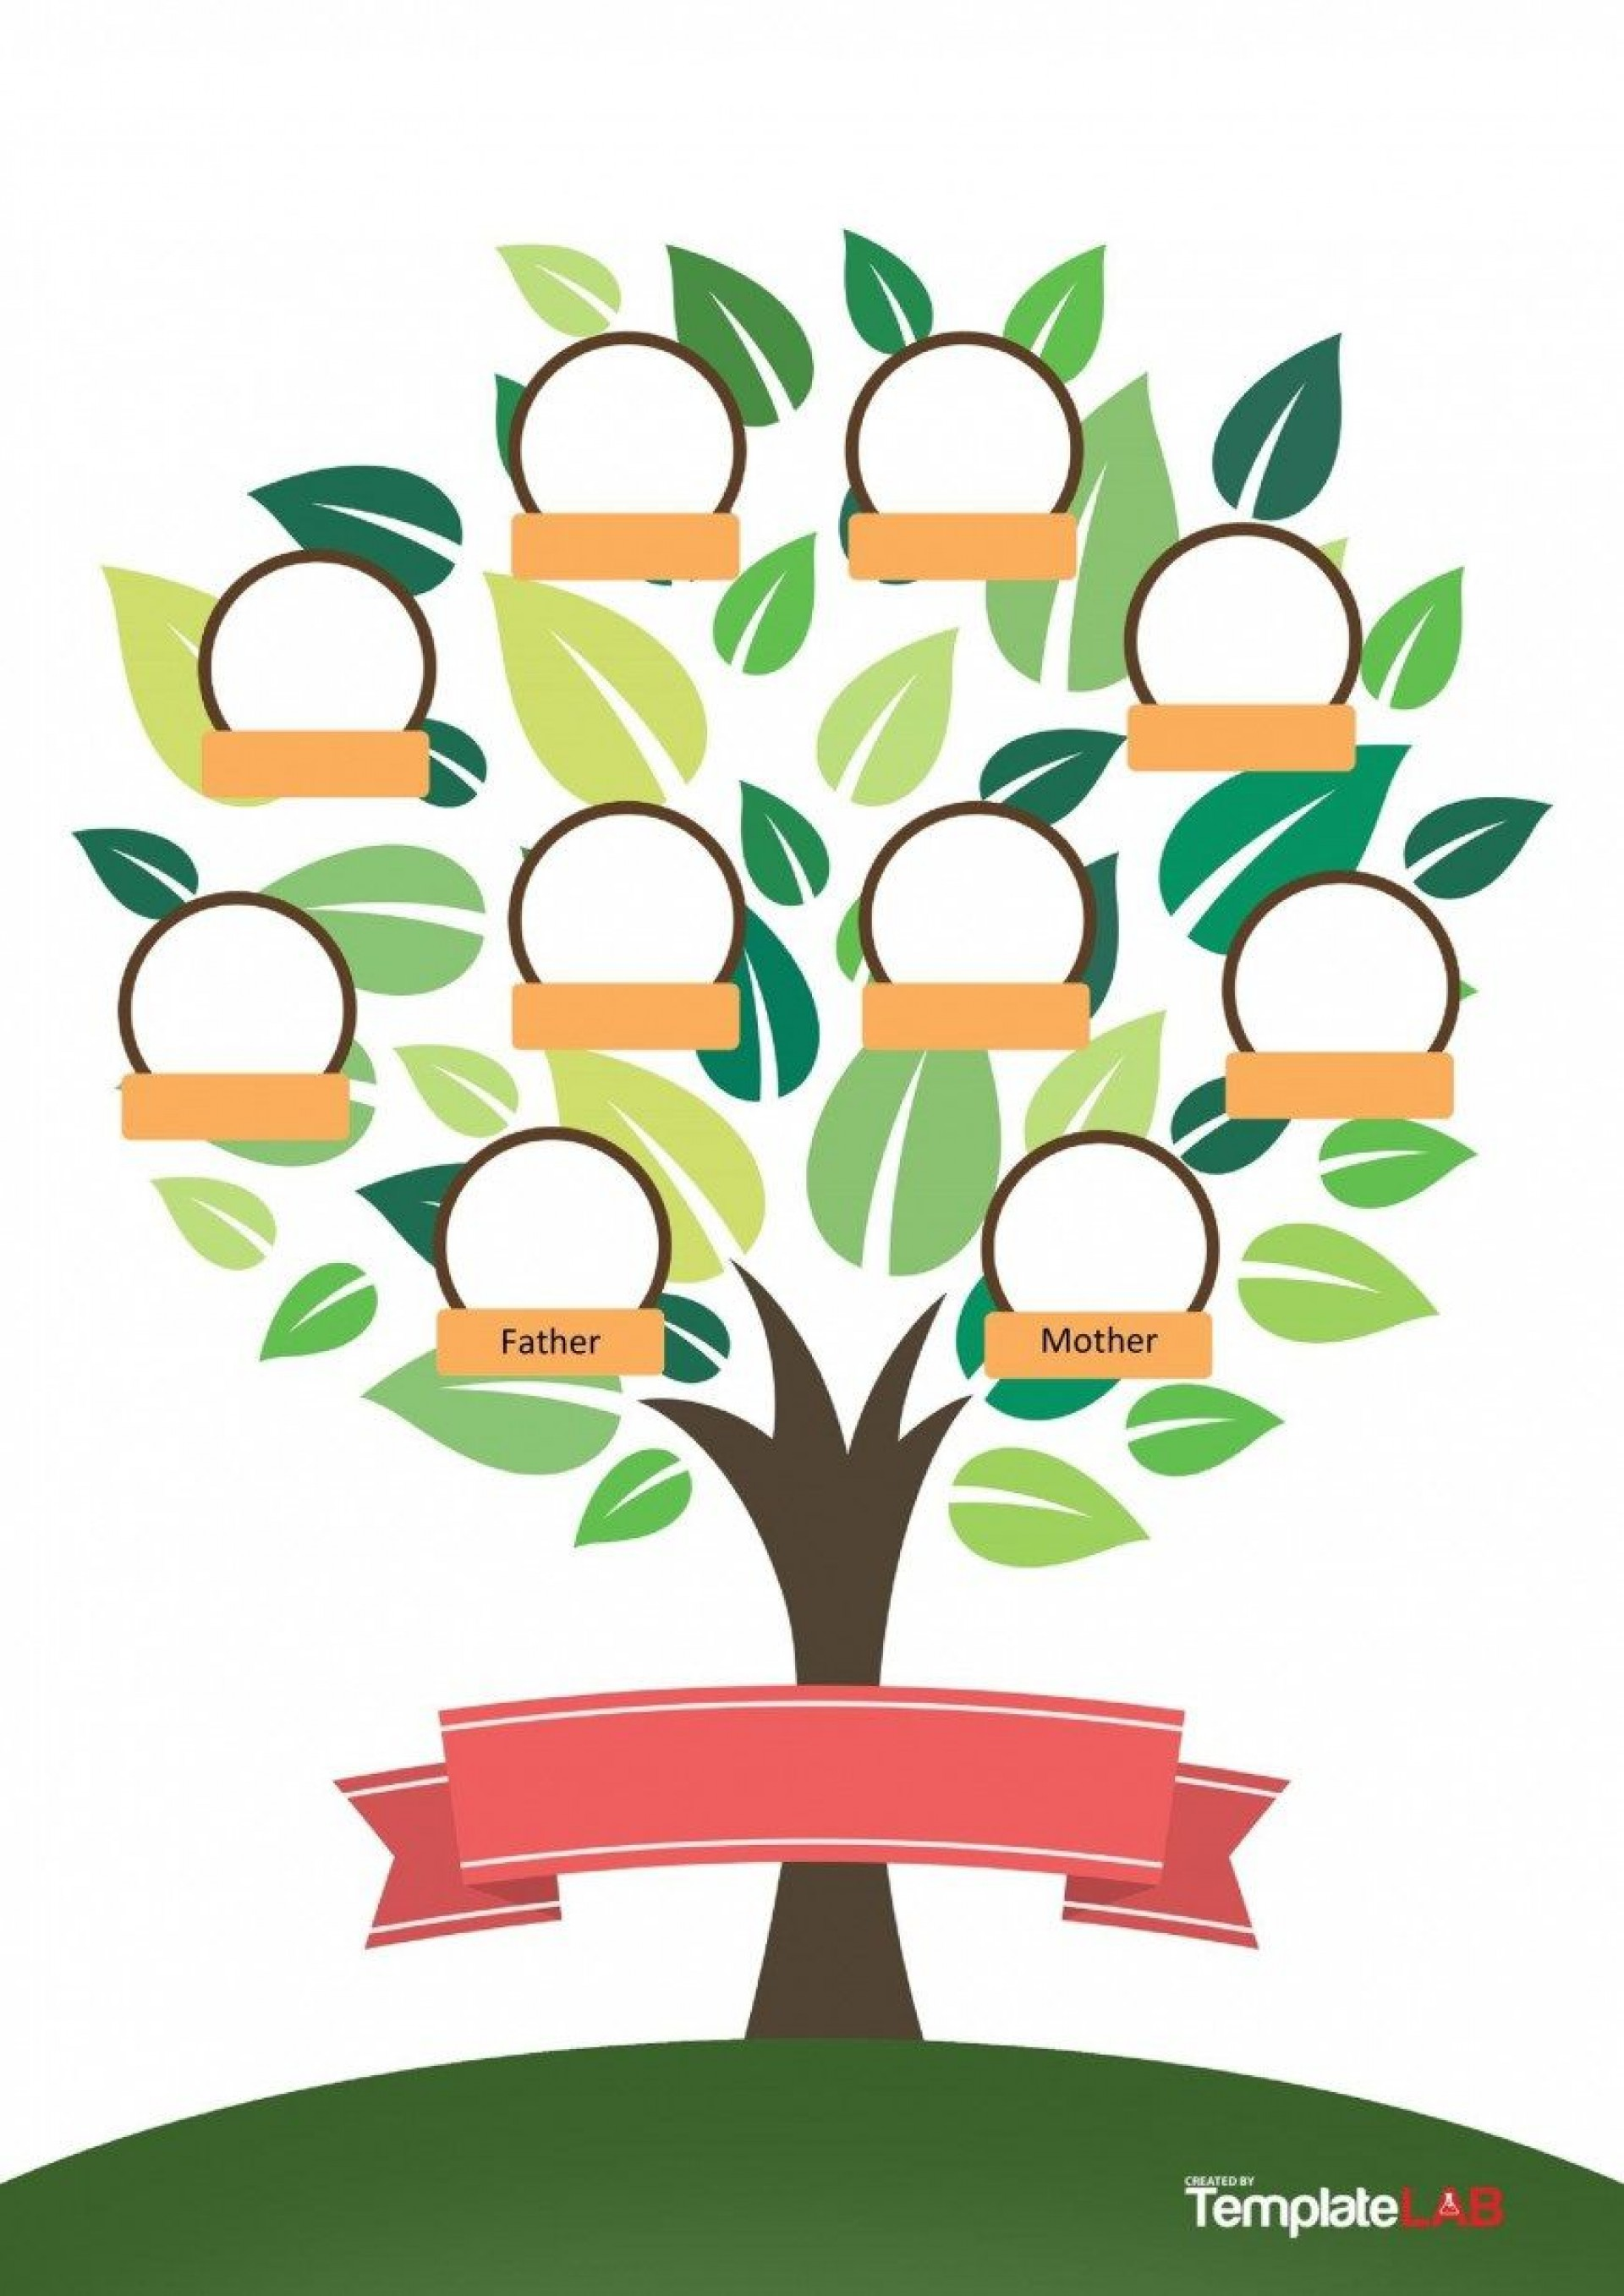 003 Magnificent Editable Family Tree Template Online Free Idea 1920